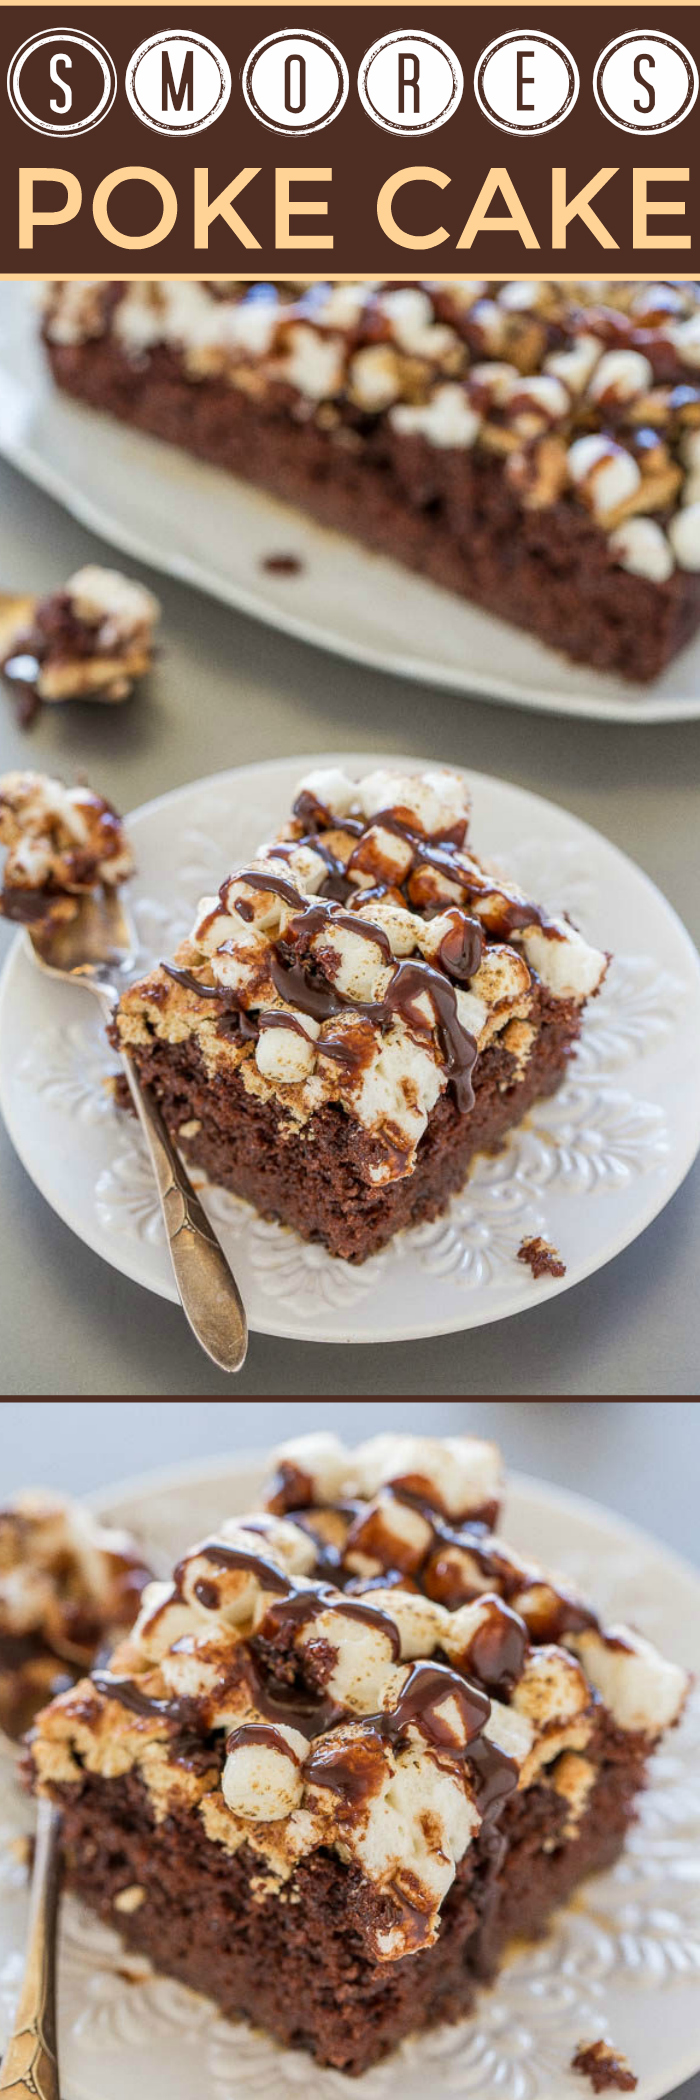 Chocolate cake gets poked all over and soaked in a marshmallow creme mixture before being topped with crushed graham crackers, toasted marshmallows, and hot fudge sauce.  #pokecake #smores #smoresrecipe #cakerecipe